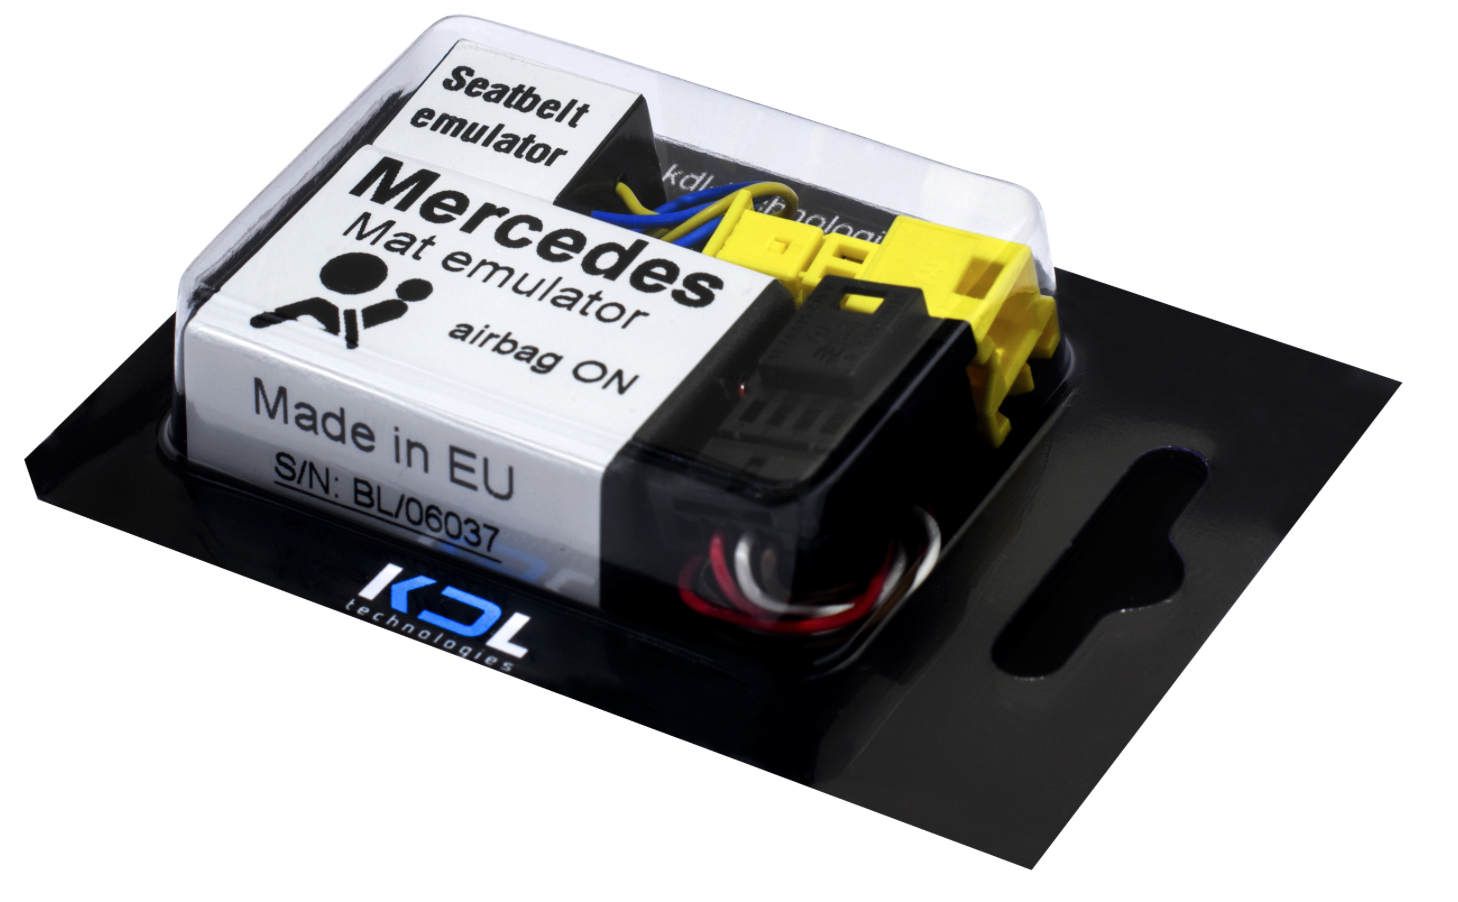 Passenger Seat Occupancy WSS Mat Bypass For MERCEDES BENZ Airbag Sensor Emulator